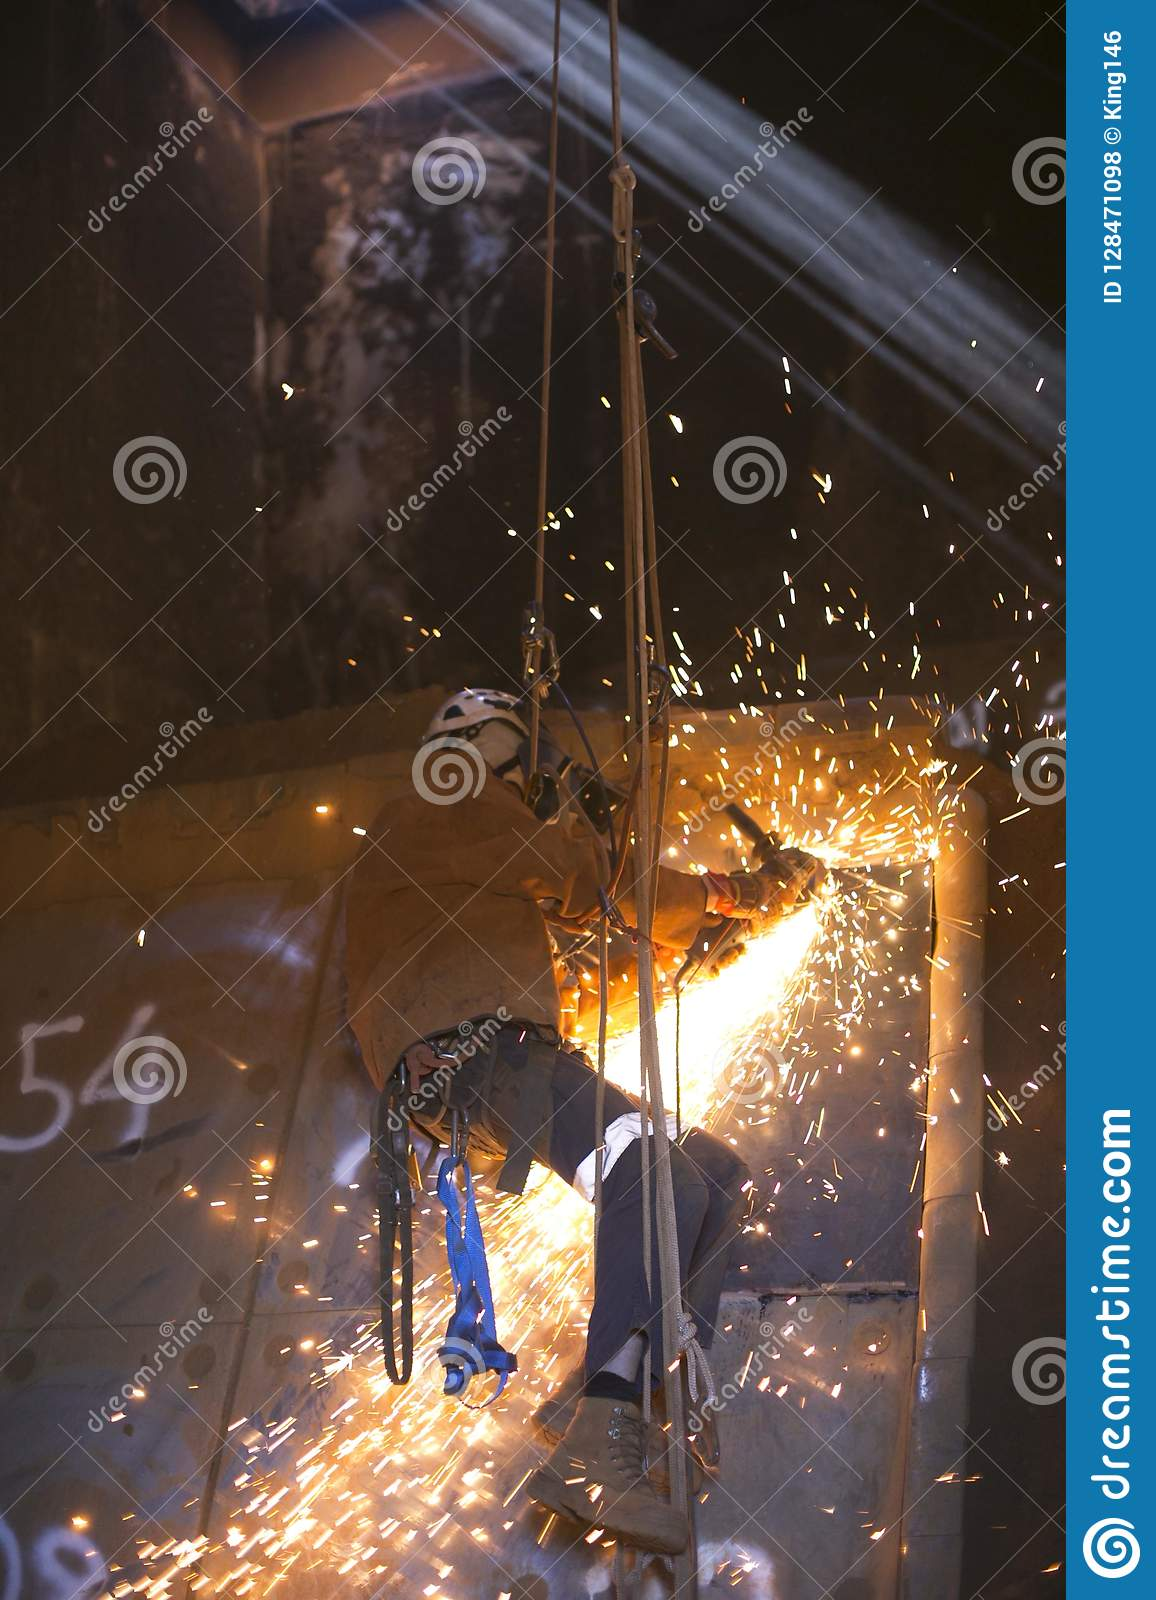 Rope Access Worker, Wearing Full Safety Body Harness, Face